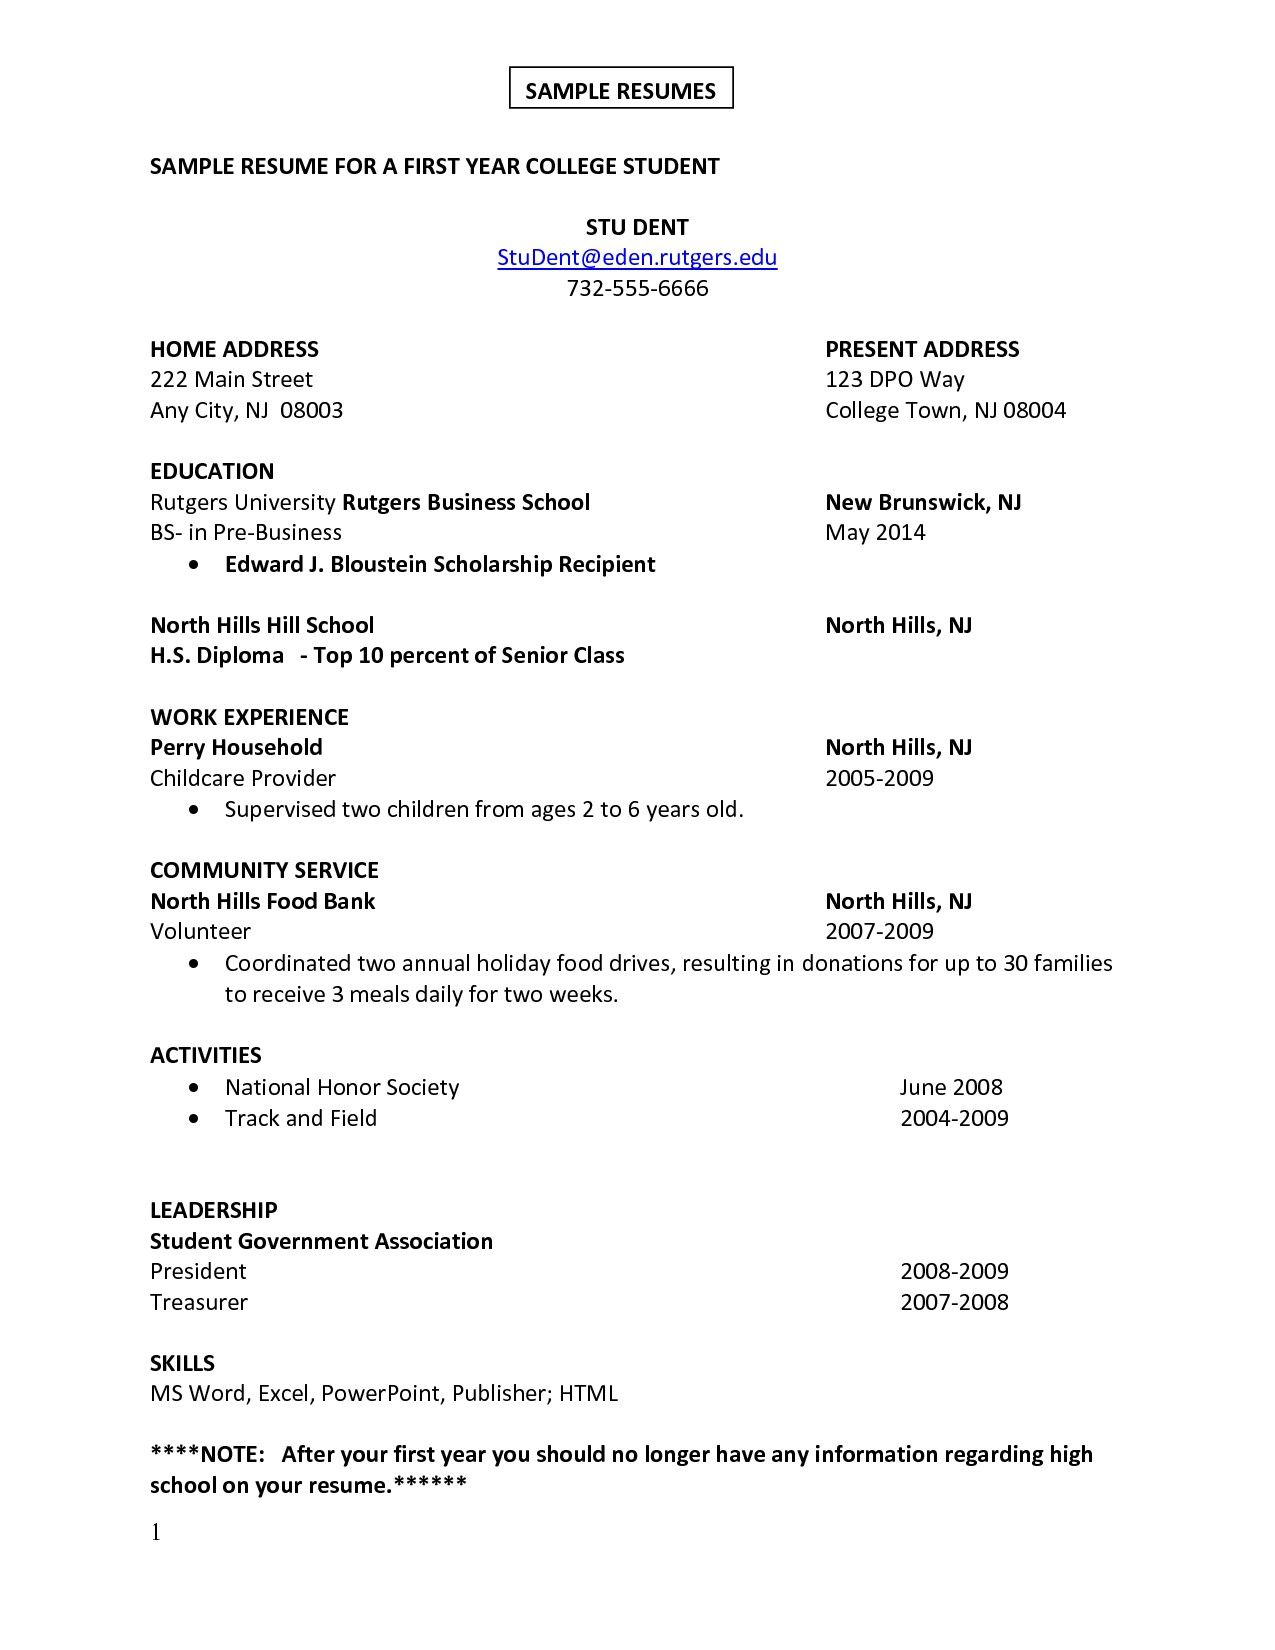 Resume Profile Examples First Job Resume  Google Search  Resume  Pinterest  Sample